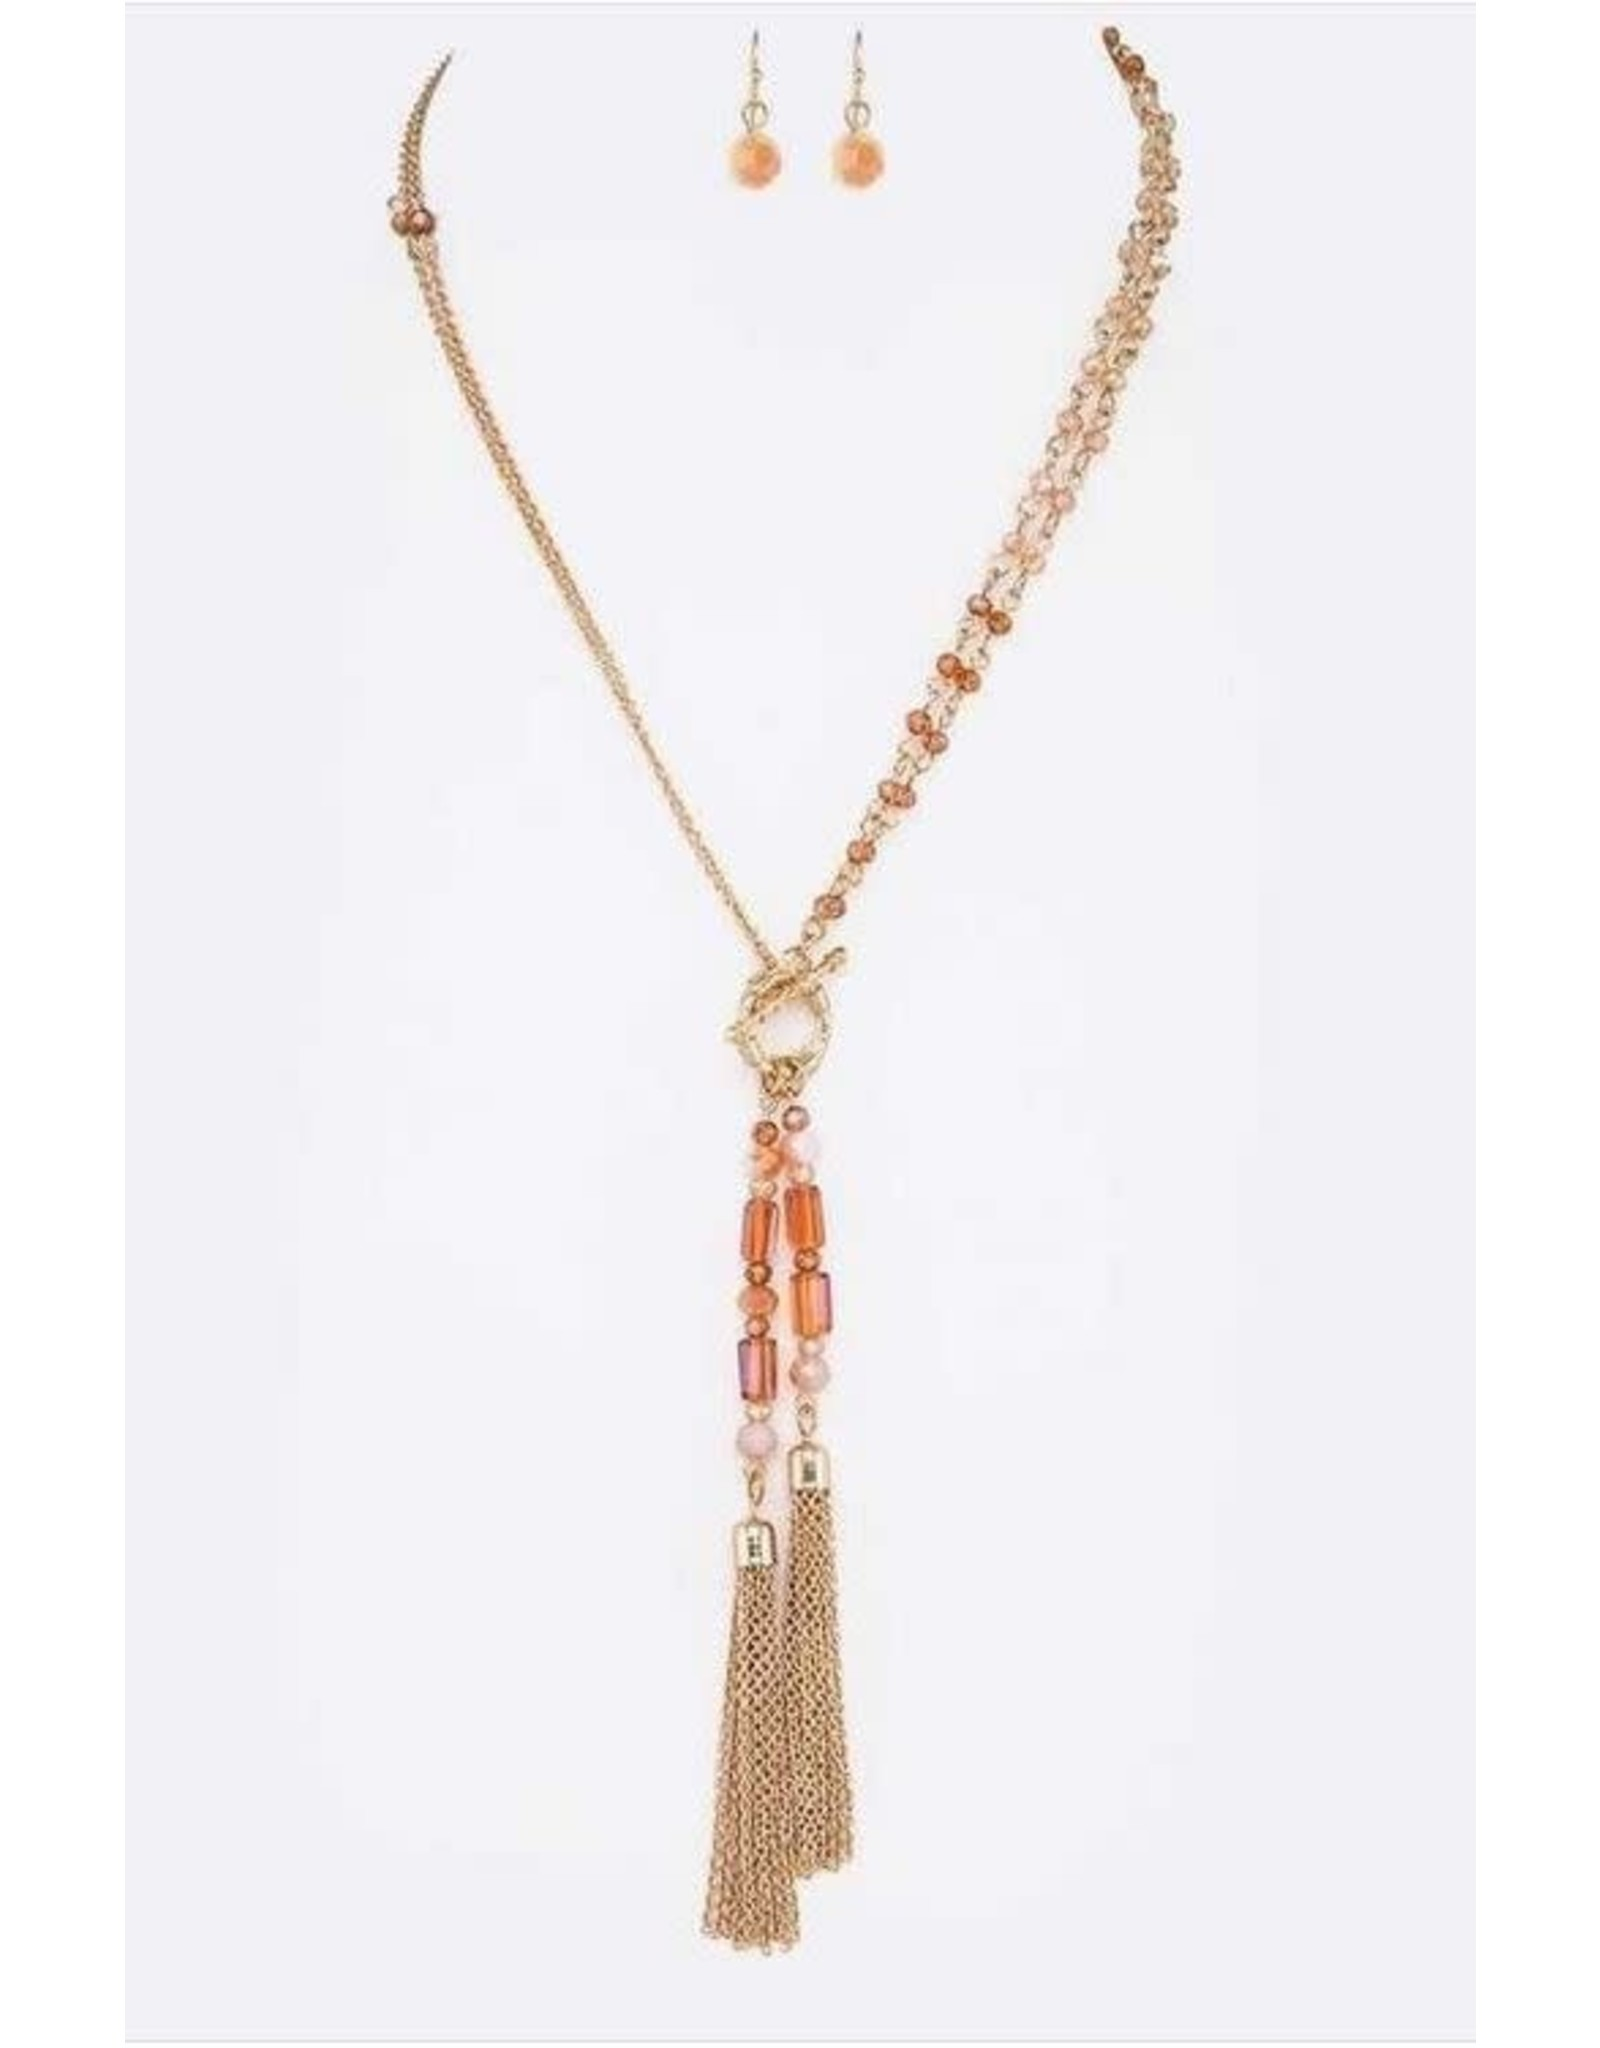 BROWN MIX CRYSTAL TOGGLE CHAIN NECKLACE